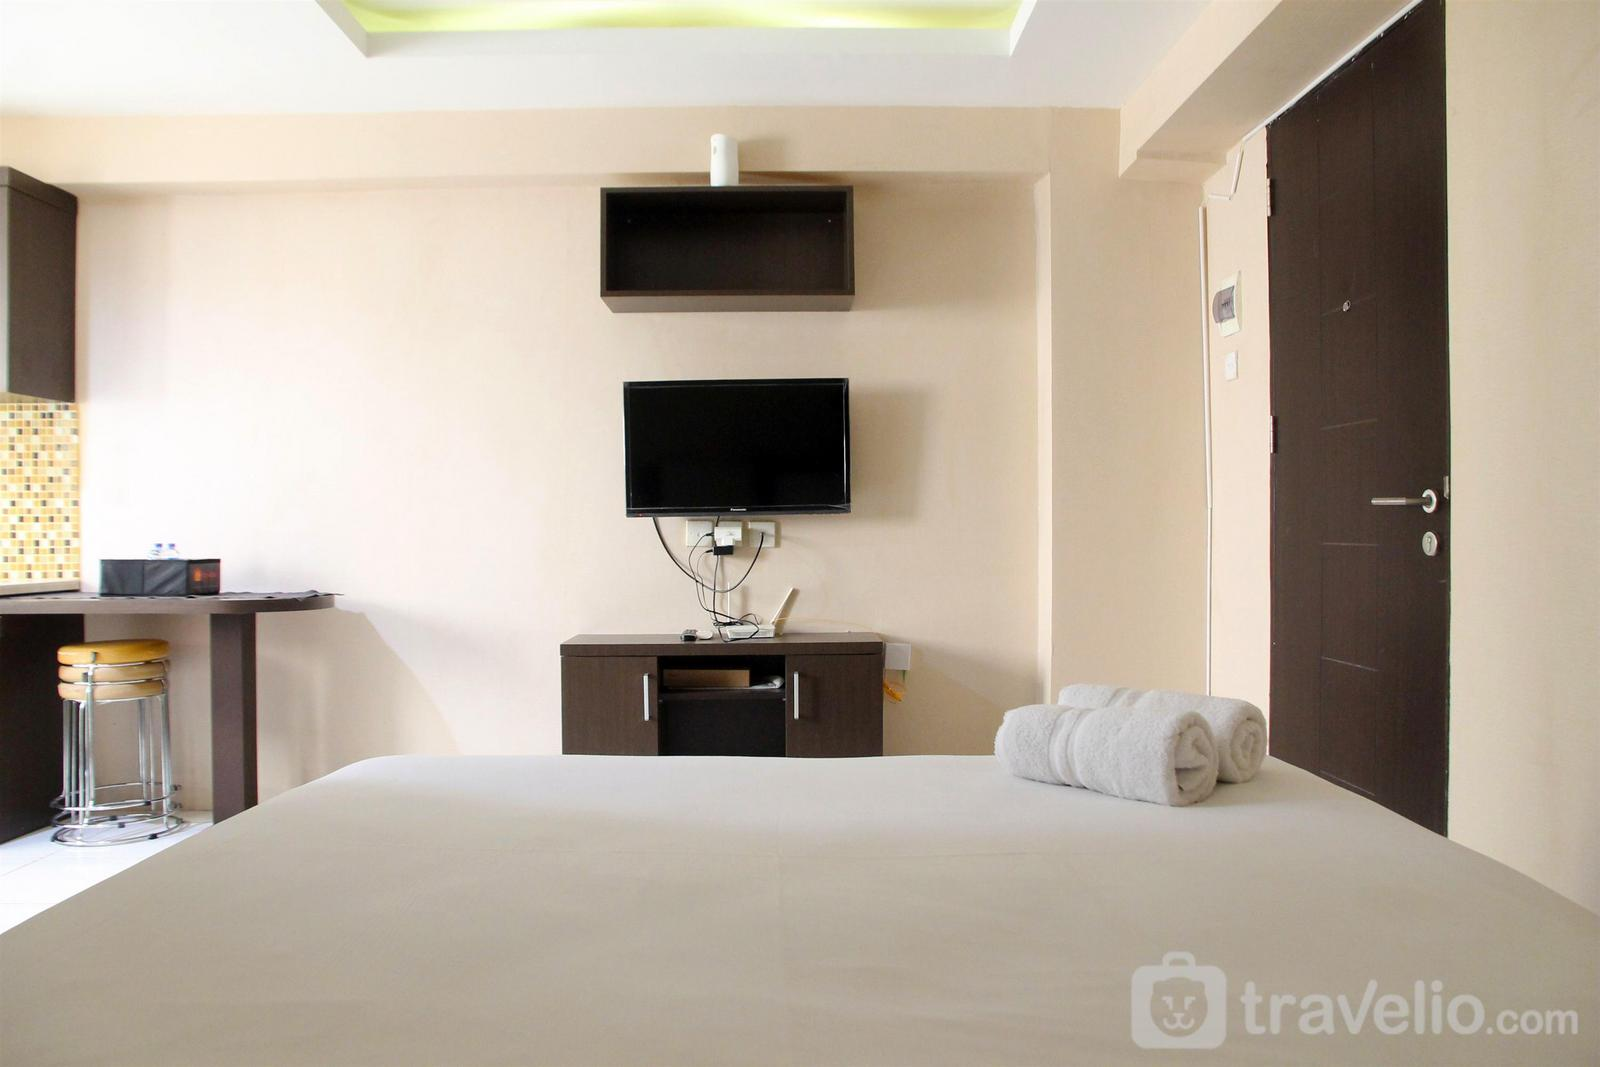 Kebagusan City Apartemen Pasar Minggu - Best Deal Studio at Kebagusan City Apartment By Travelio